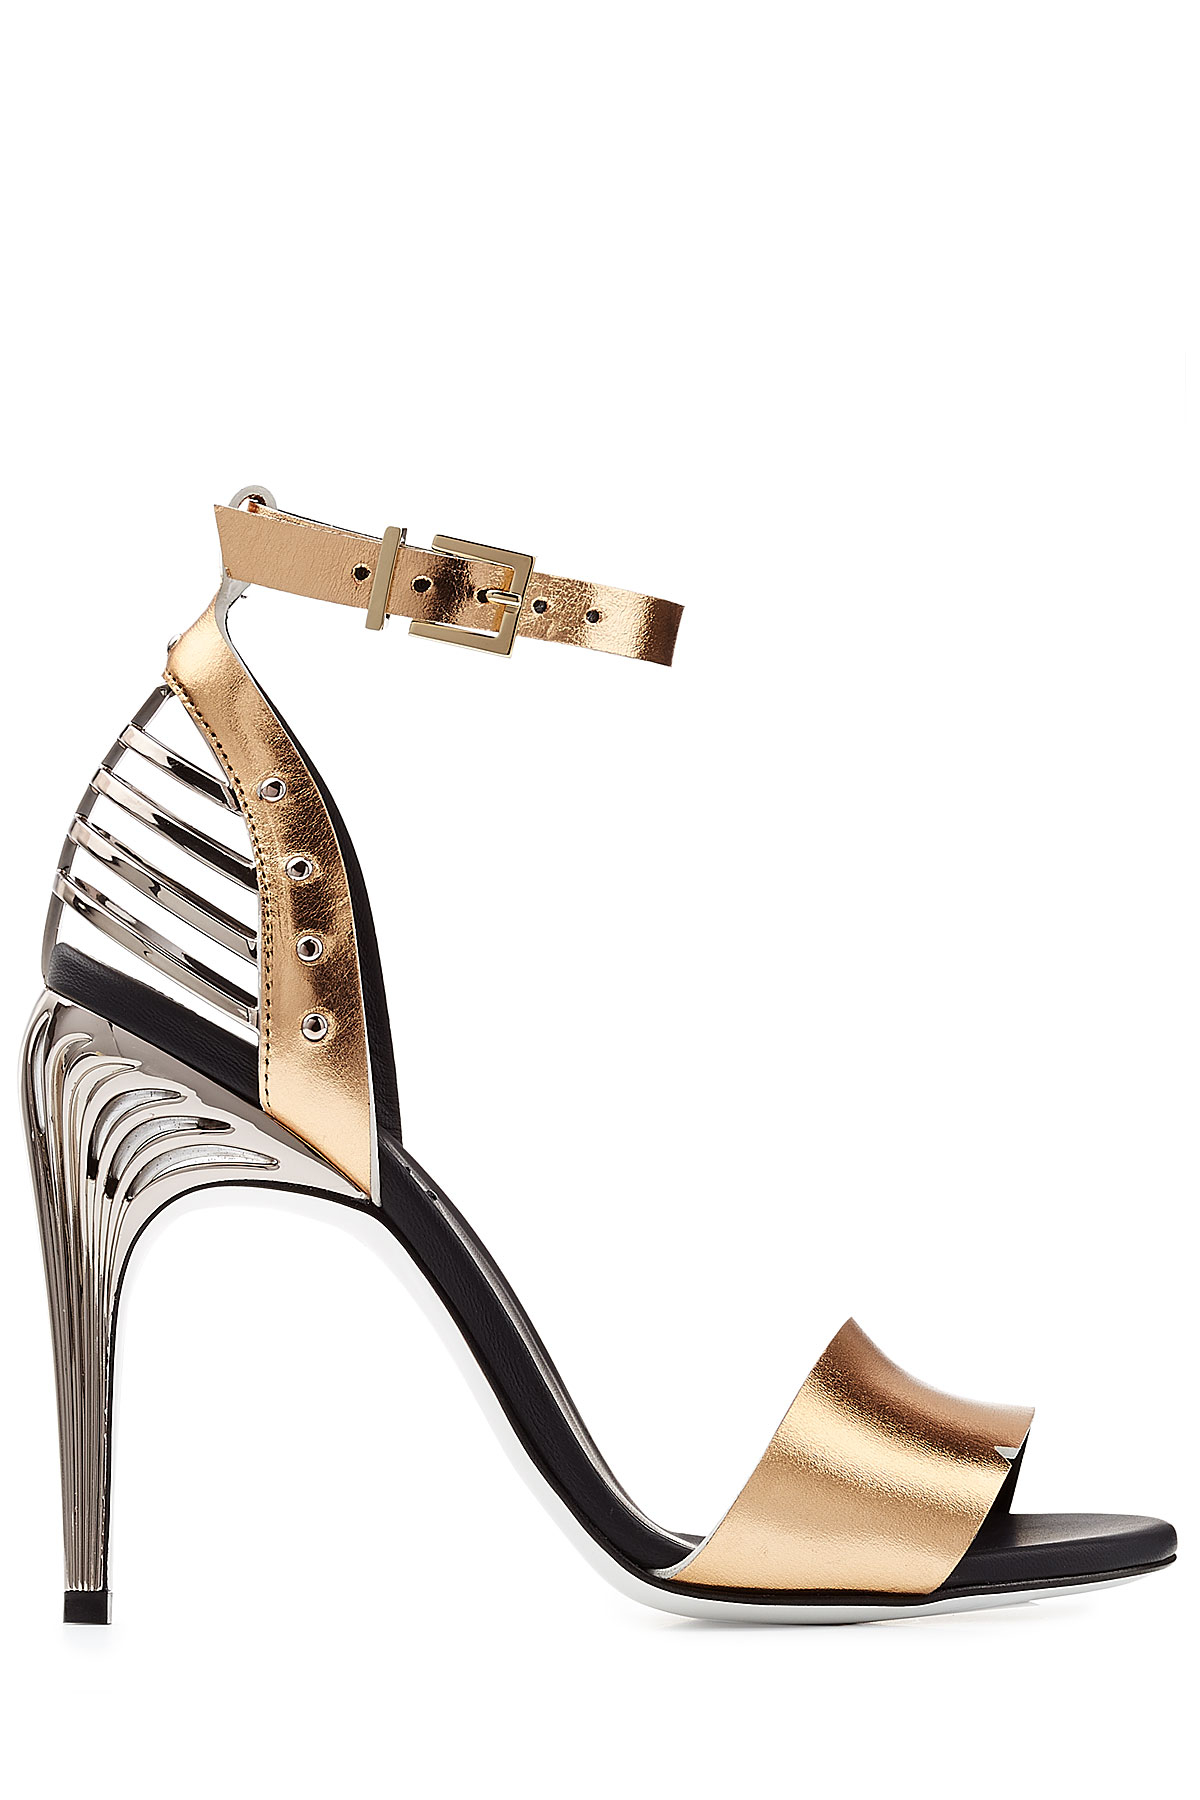 discount exclusive huge surprise online Fendi Metallic Leather Sandals excellent sale online best seller cheap online buy cheap for cheap LuoUr